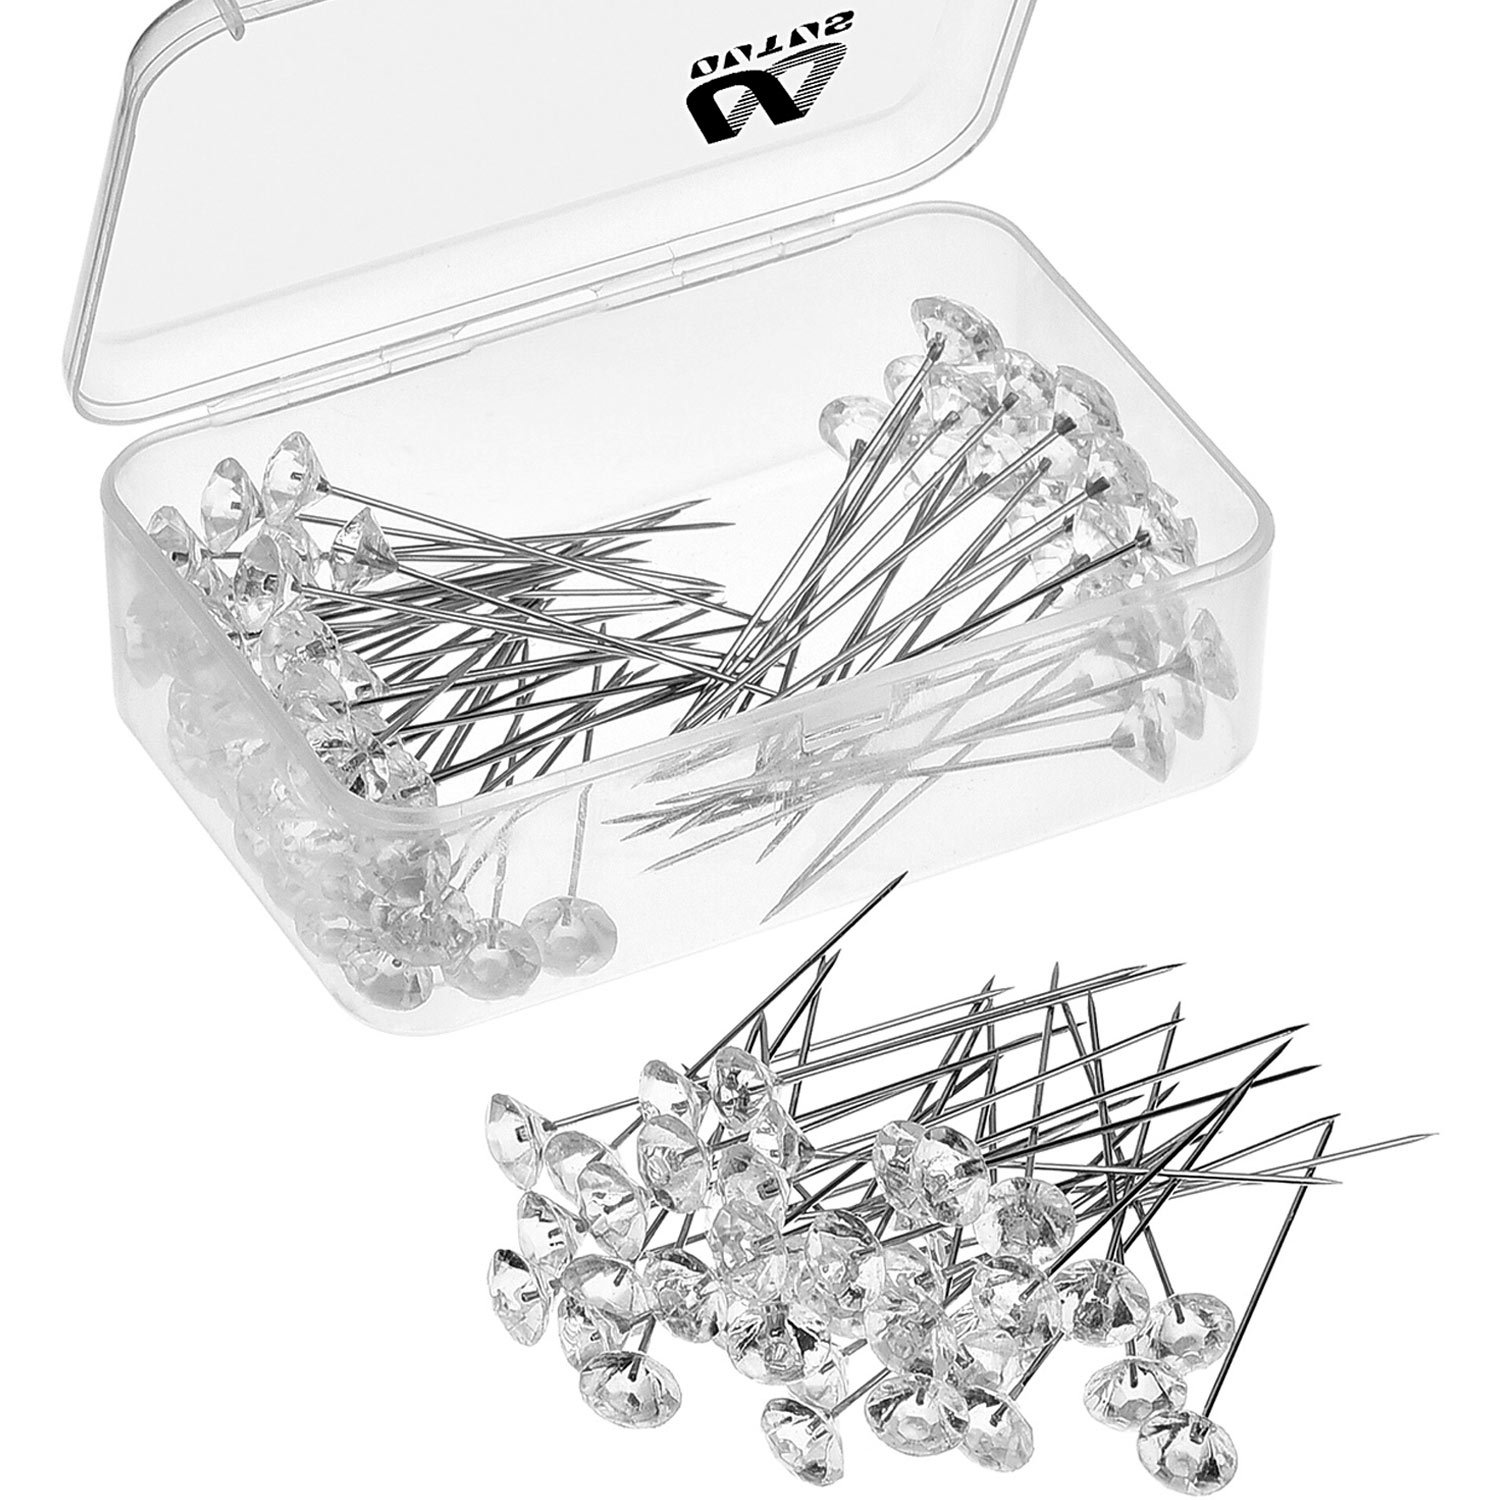 Best pins for bouquets amazon outus 100 pieces flower pins corsages pins head pins wedding bouquet pins crystal pins floral bouquet pins clear 2 inch izmirmasajfo